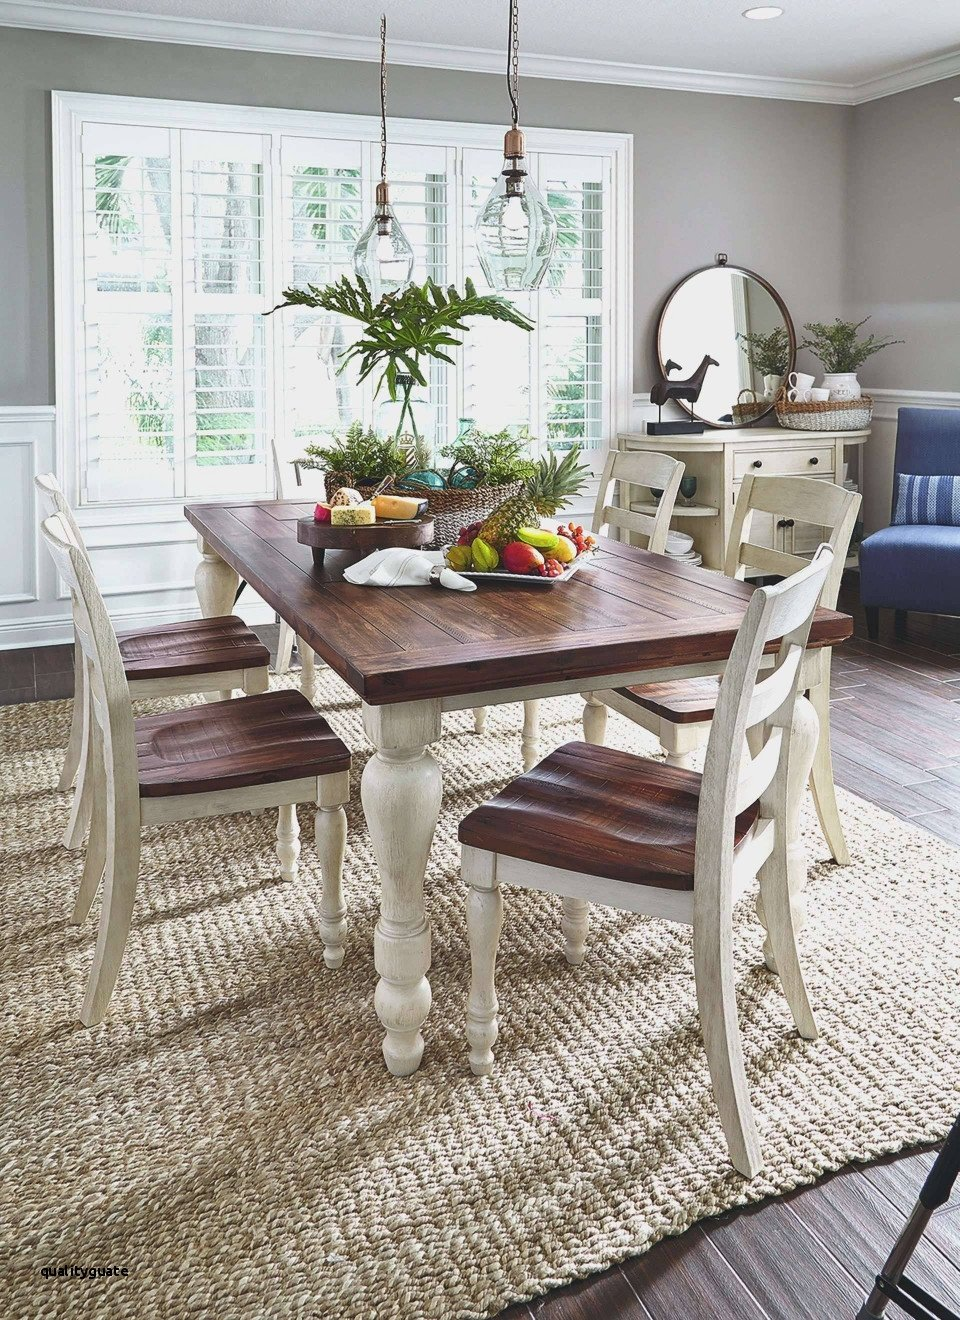 10 Dining Room Table Vase Home Design Idea Making Dining Room Table Centerpieces